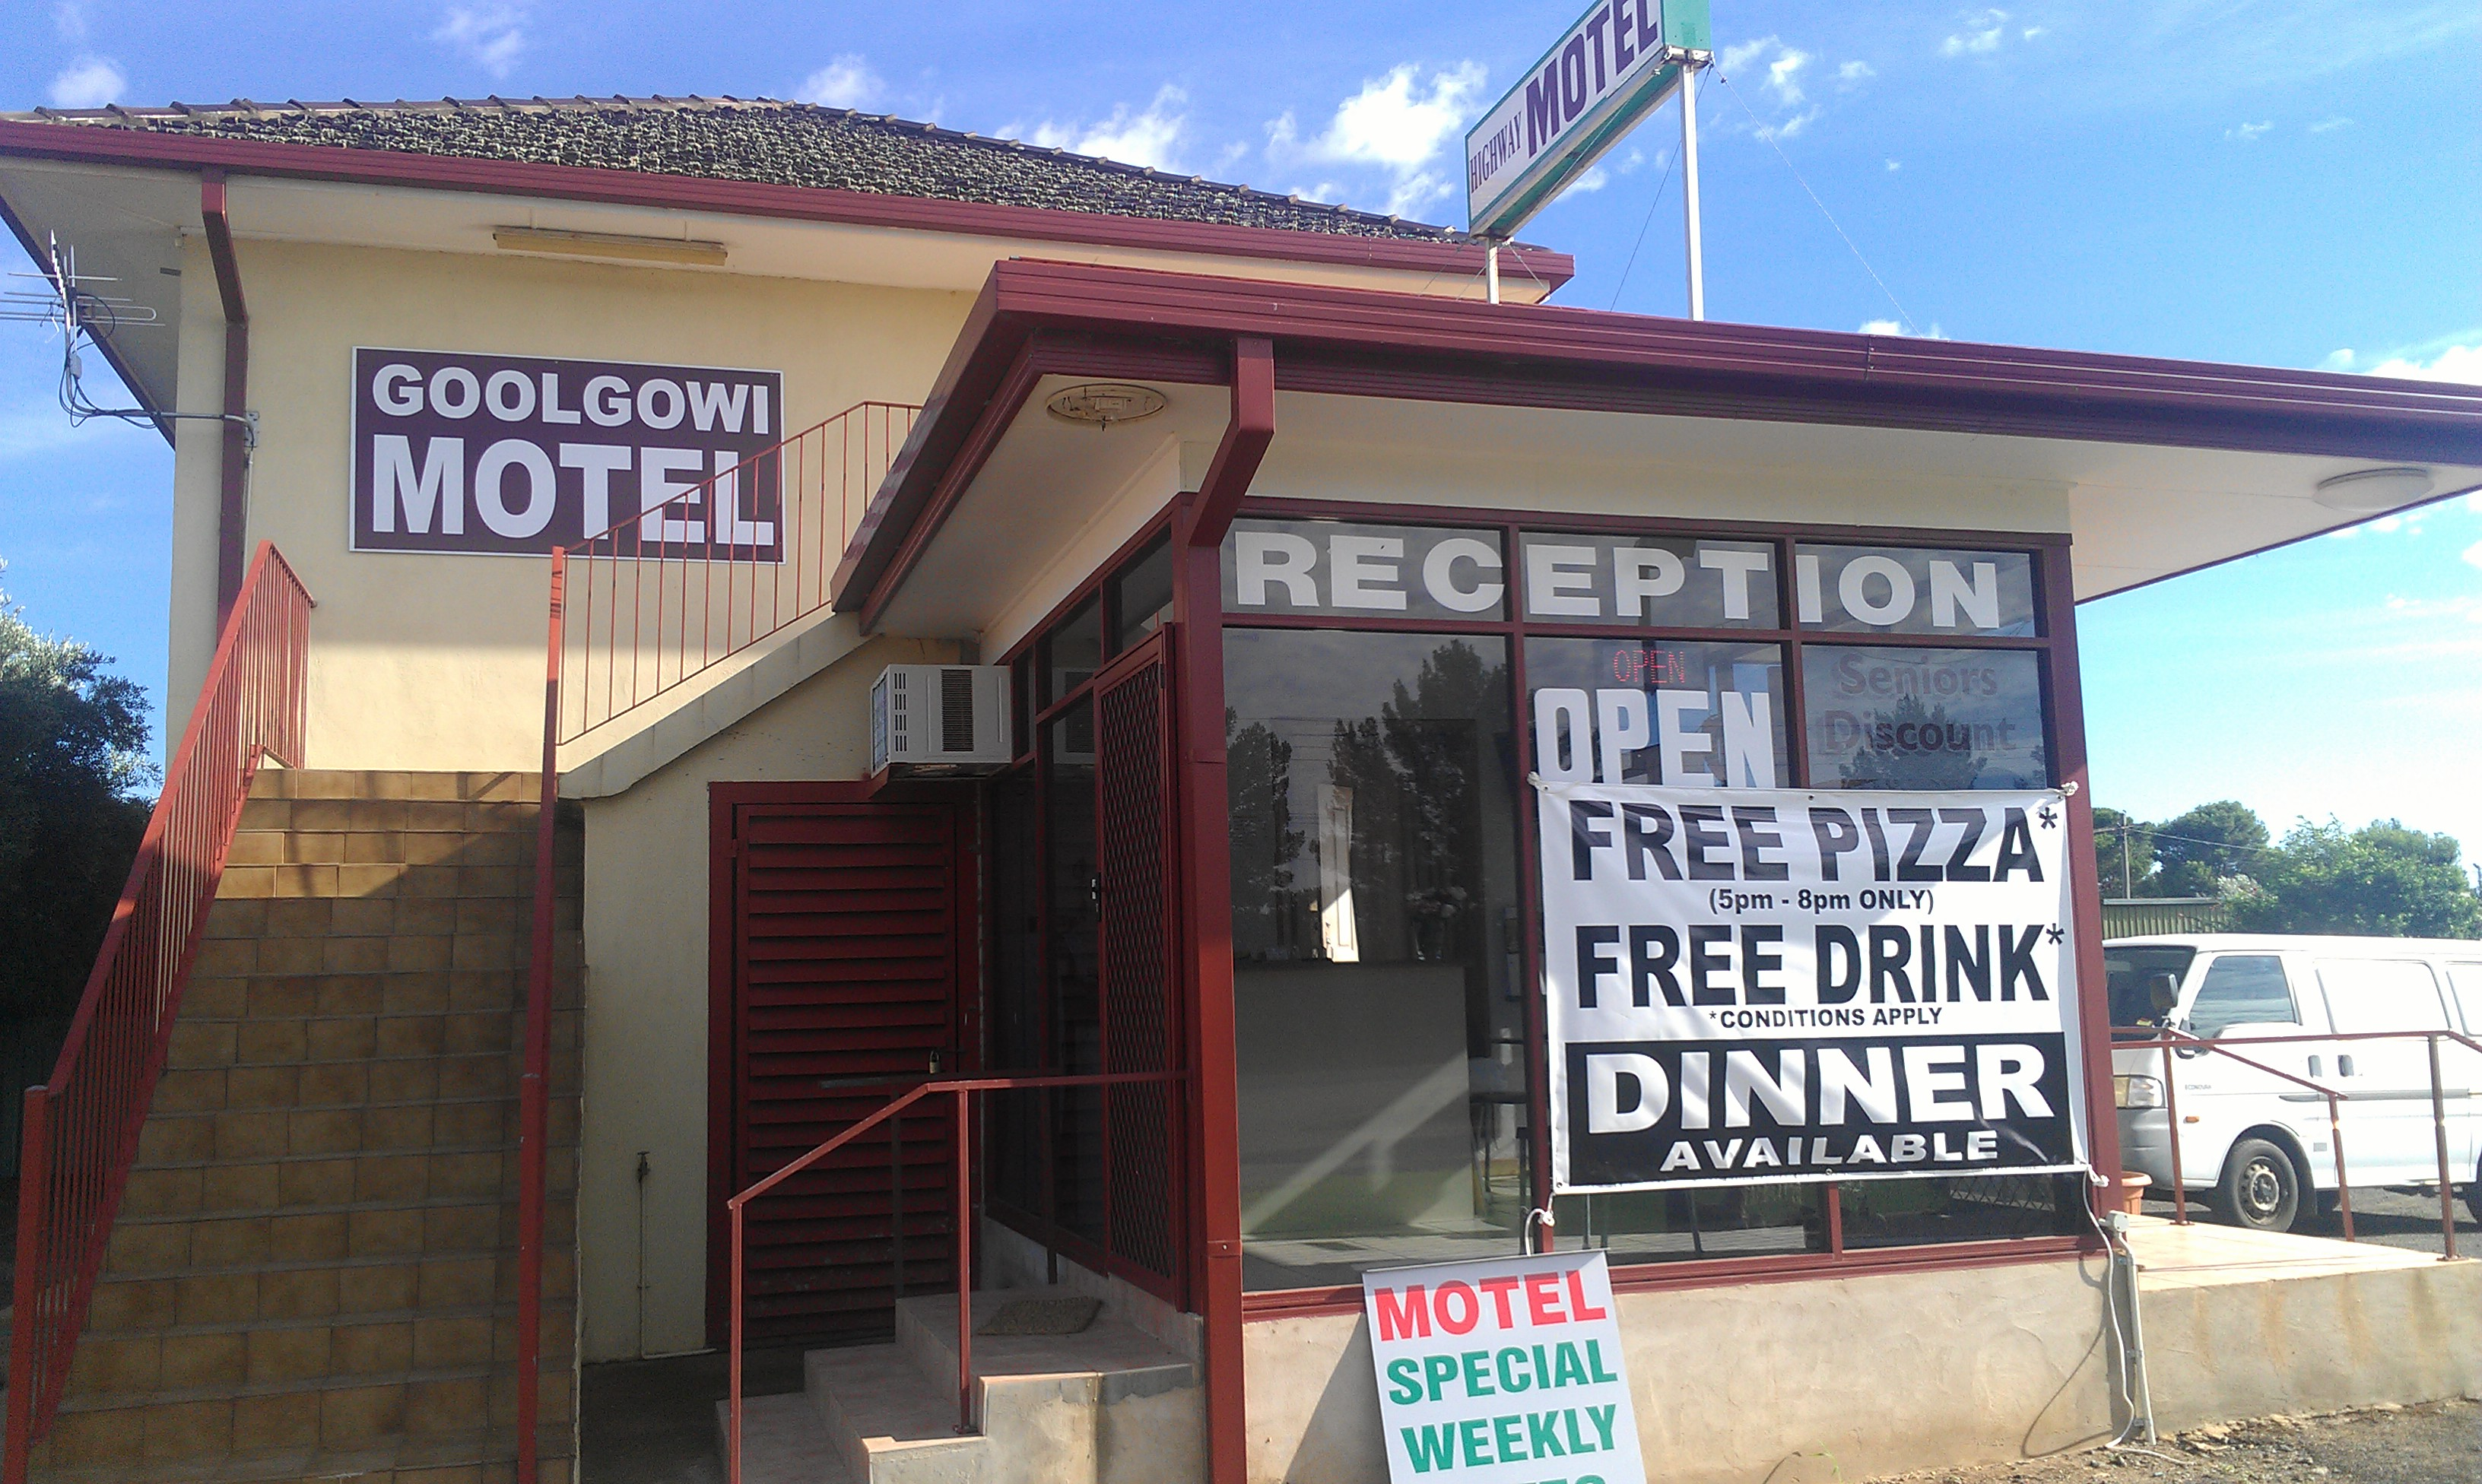 Royal Mail Hotel Goolgowi - Accommodation Gold Coast